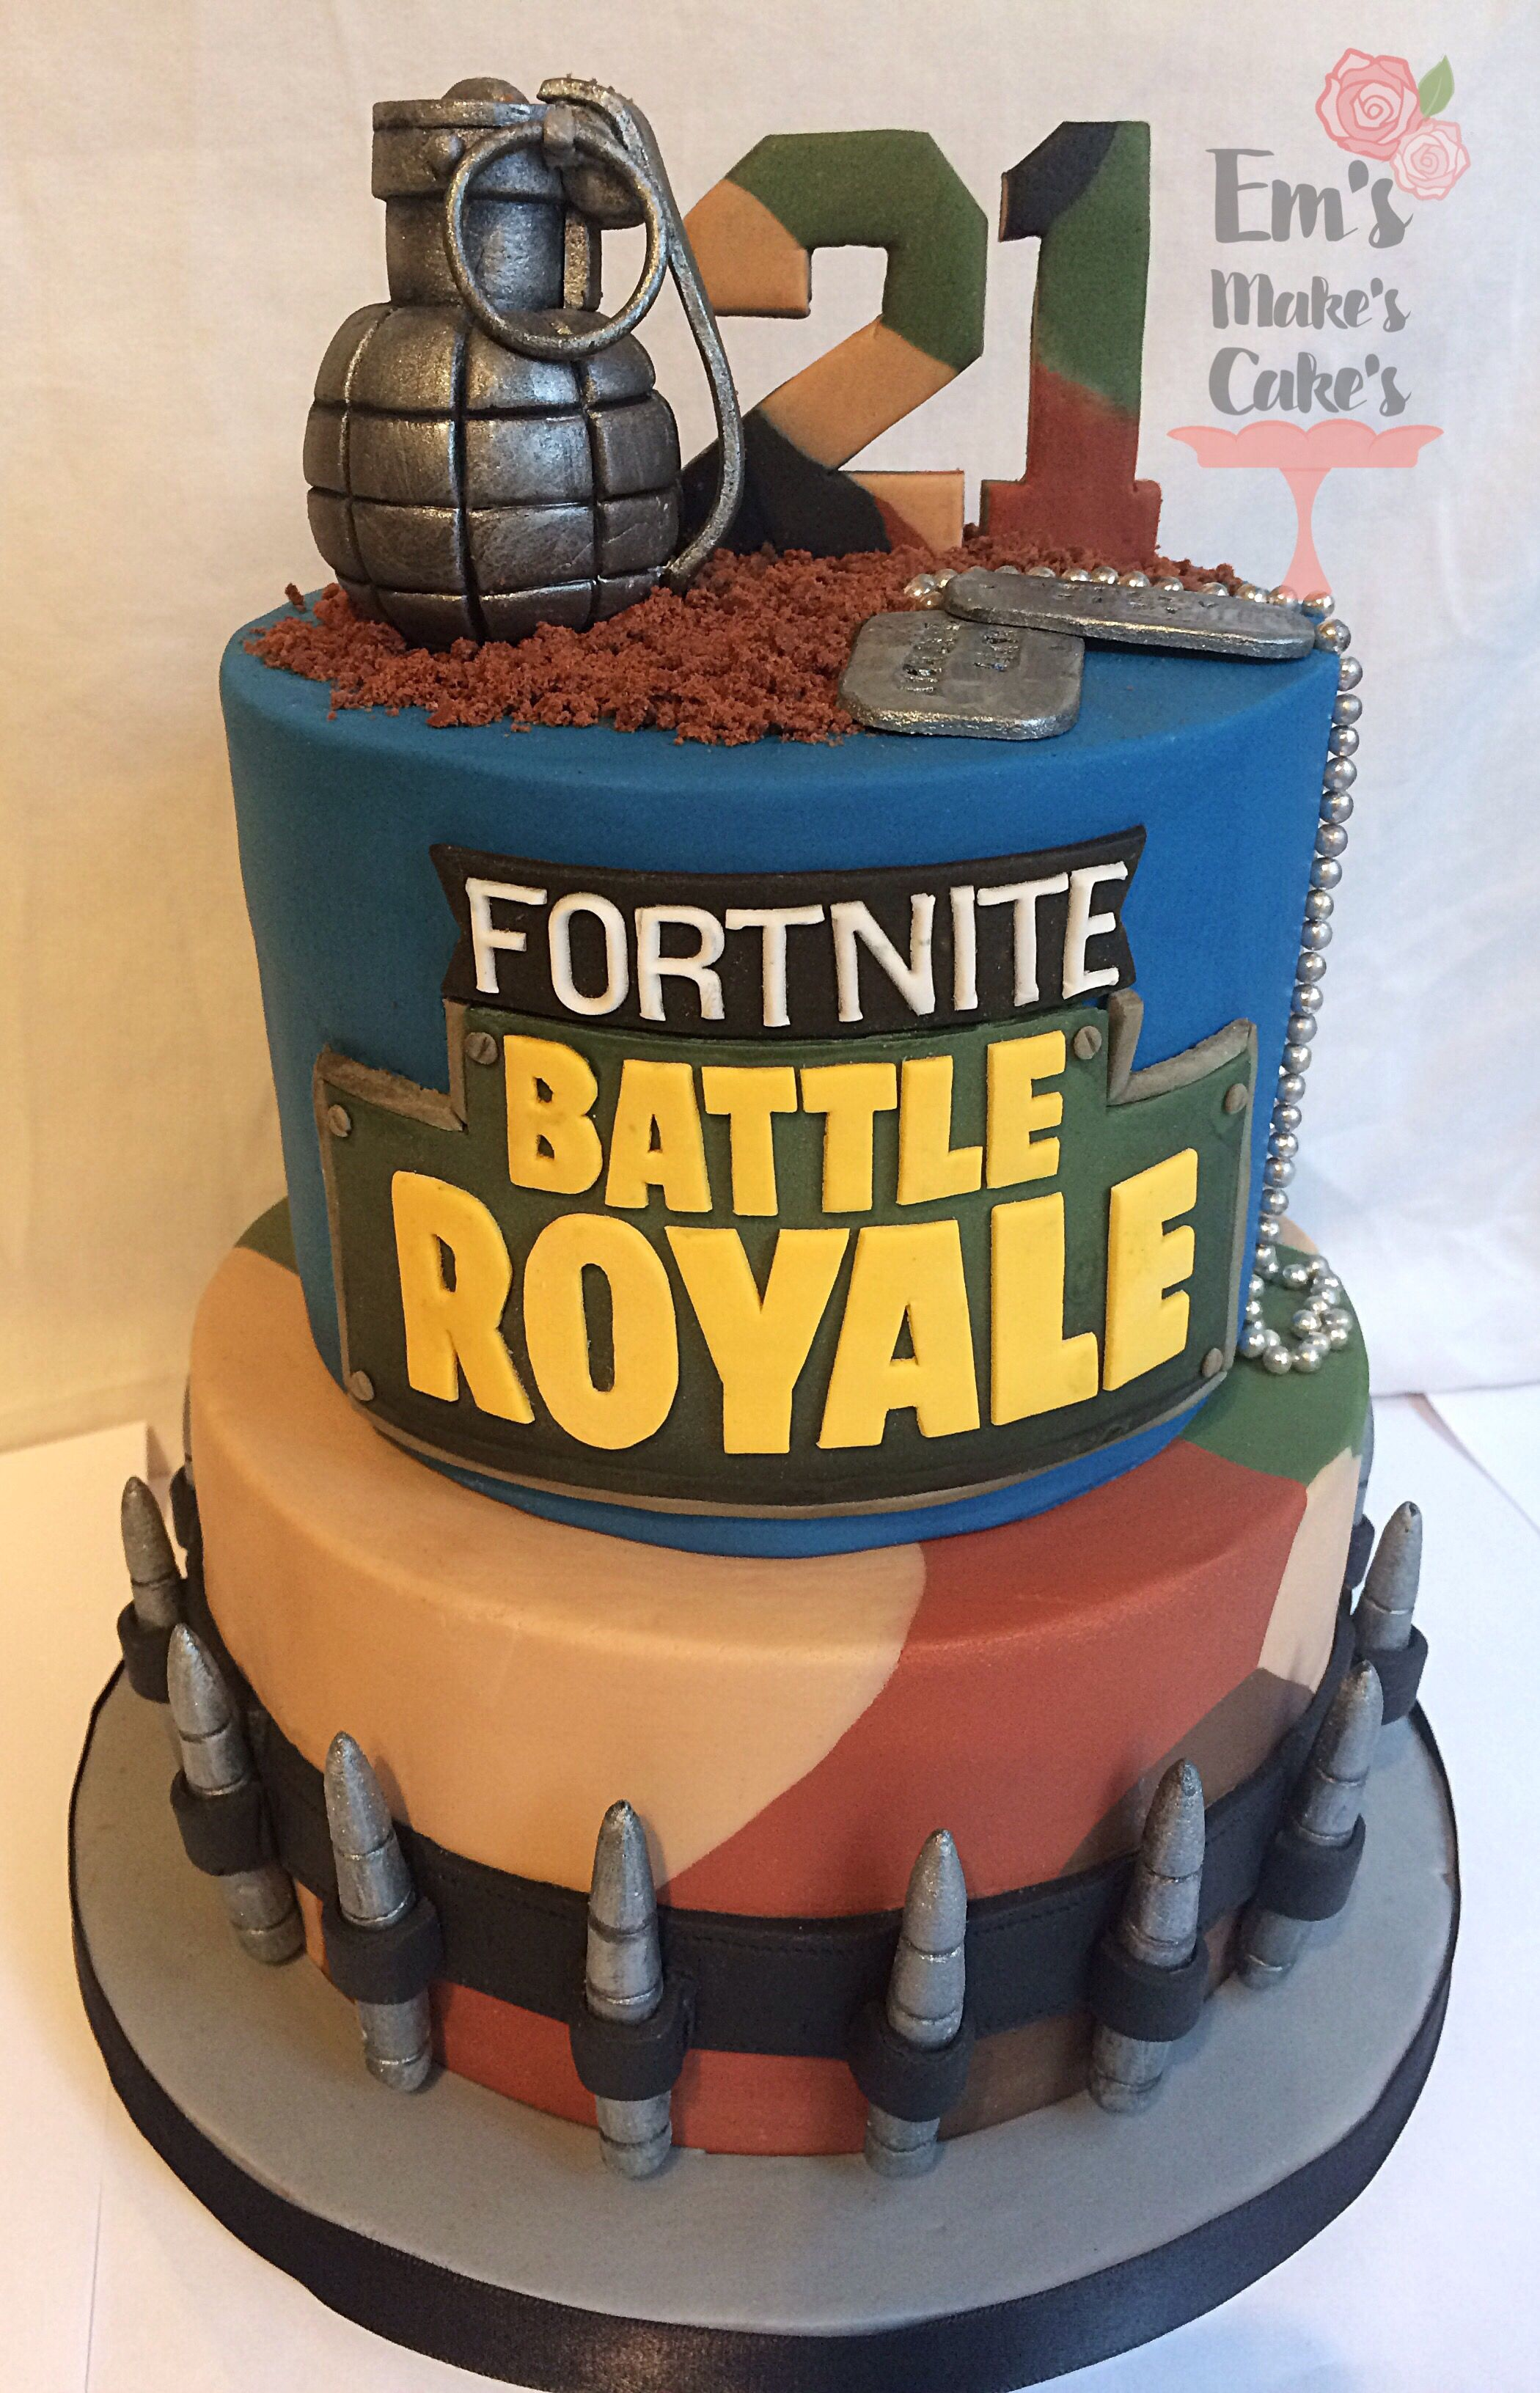 Battle Royal Fortnite cake (With images) Royal cakes